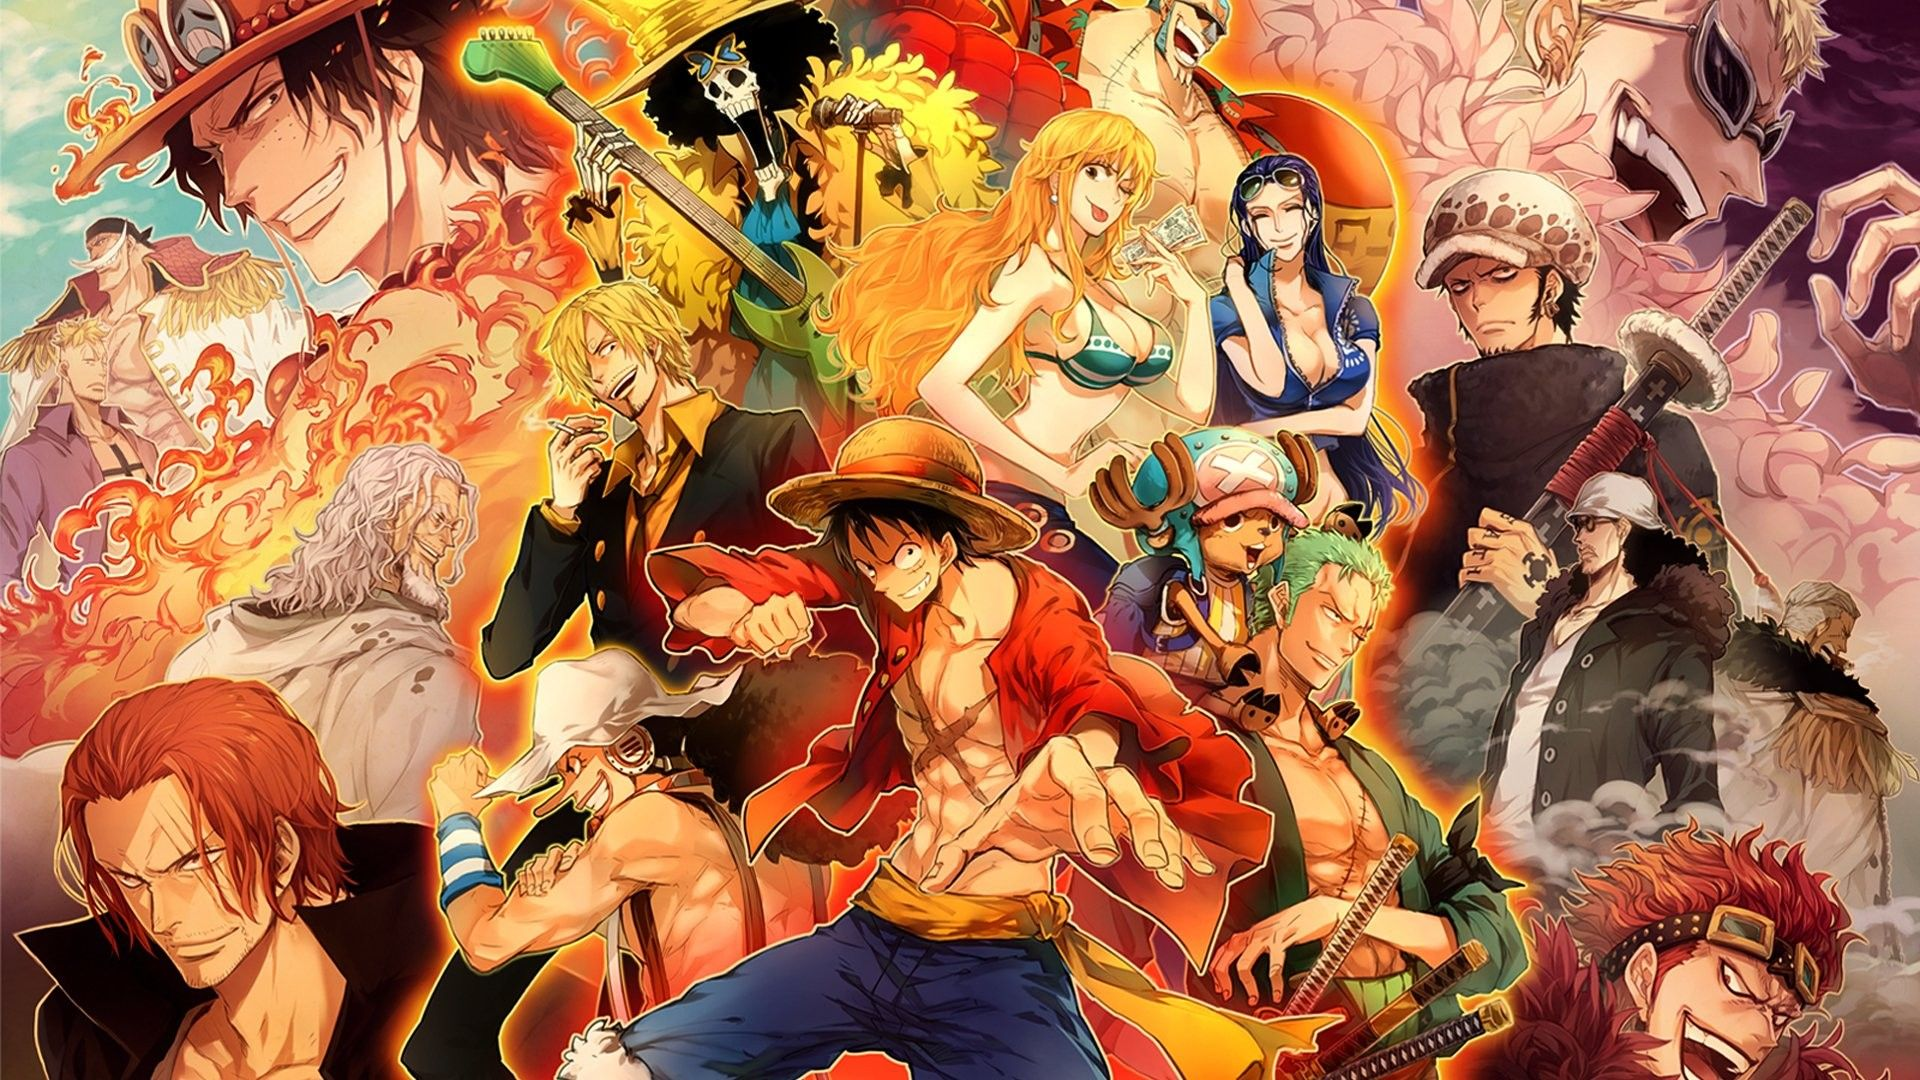 One Piece Hd Wallpapers Backgrounds Wallpaper 1680 1050 One Piece Hd Wallpapers 44 Wallpapers A One Piece Images Wallpaper Backgrounds One Piece Tattoos